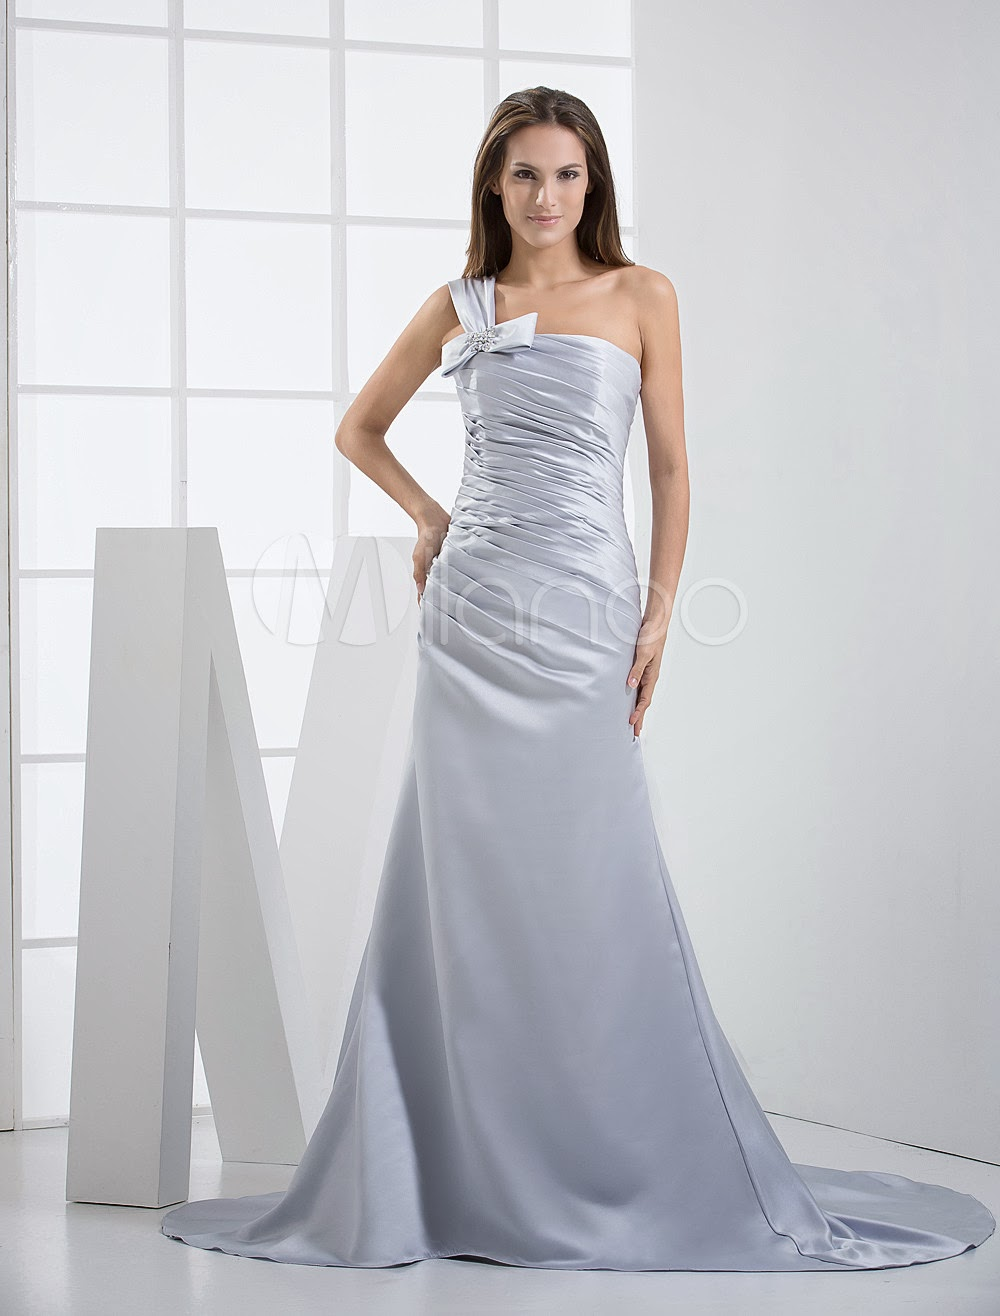 China Wholesale Dresses - Silver One-Shoulder Sheath Satin Wedding Dress